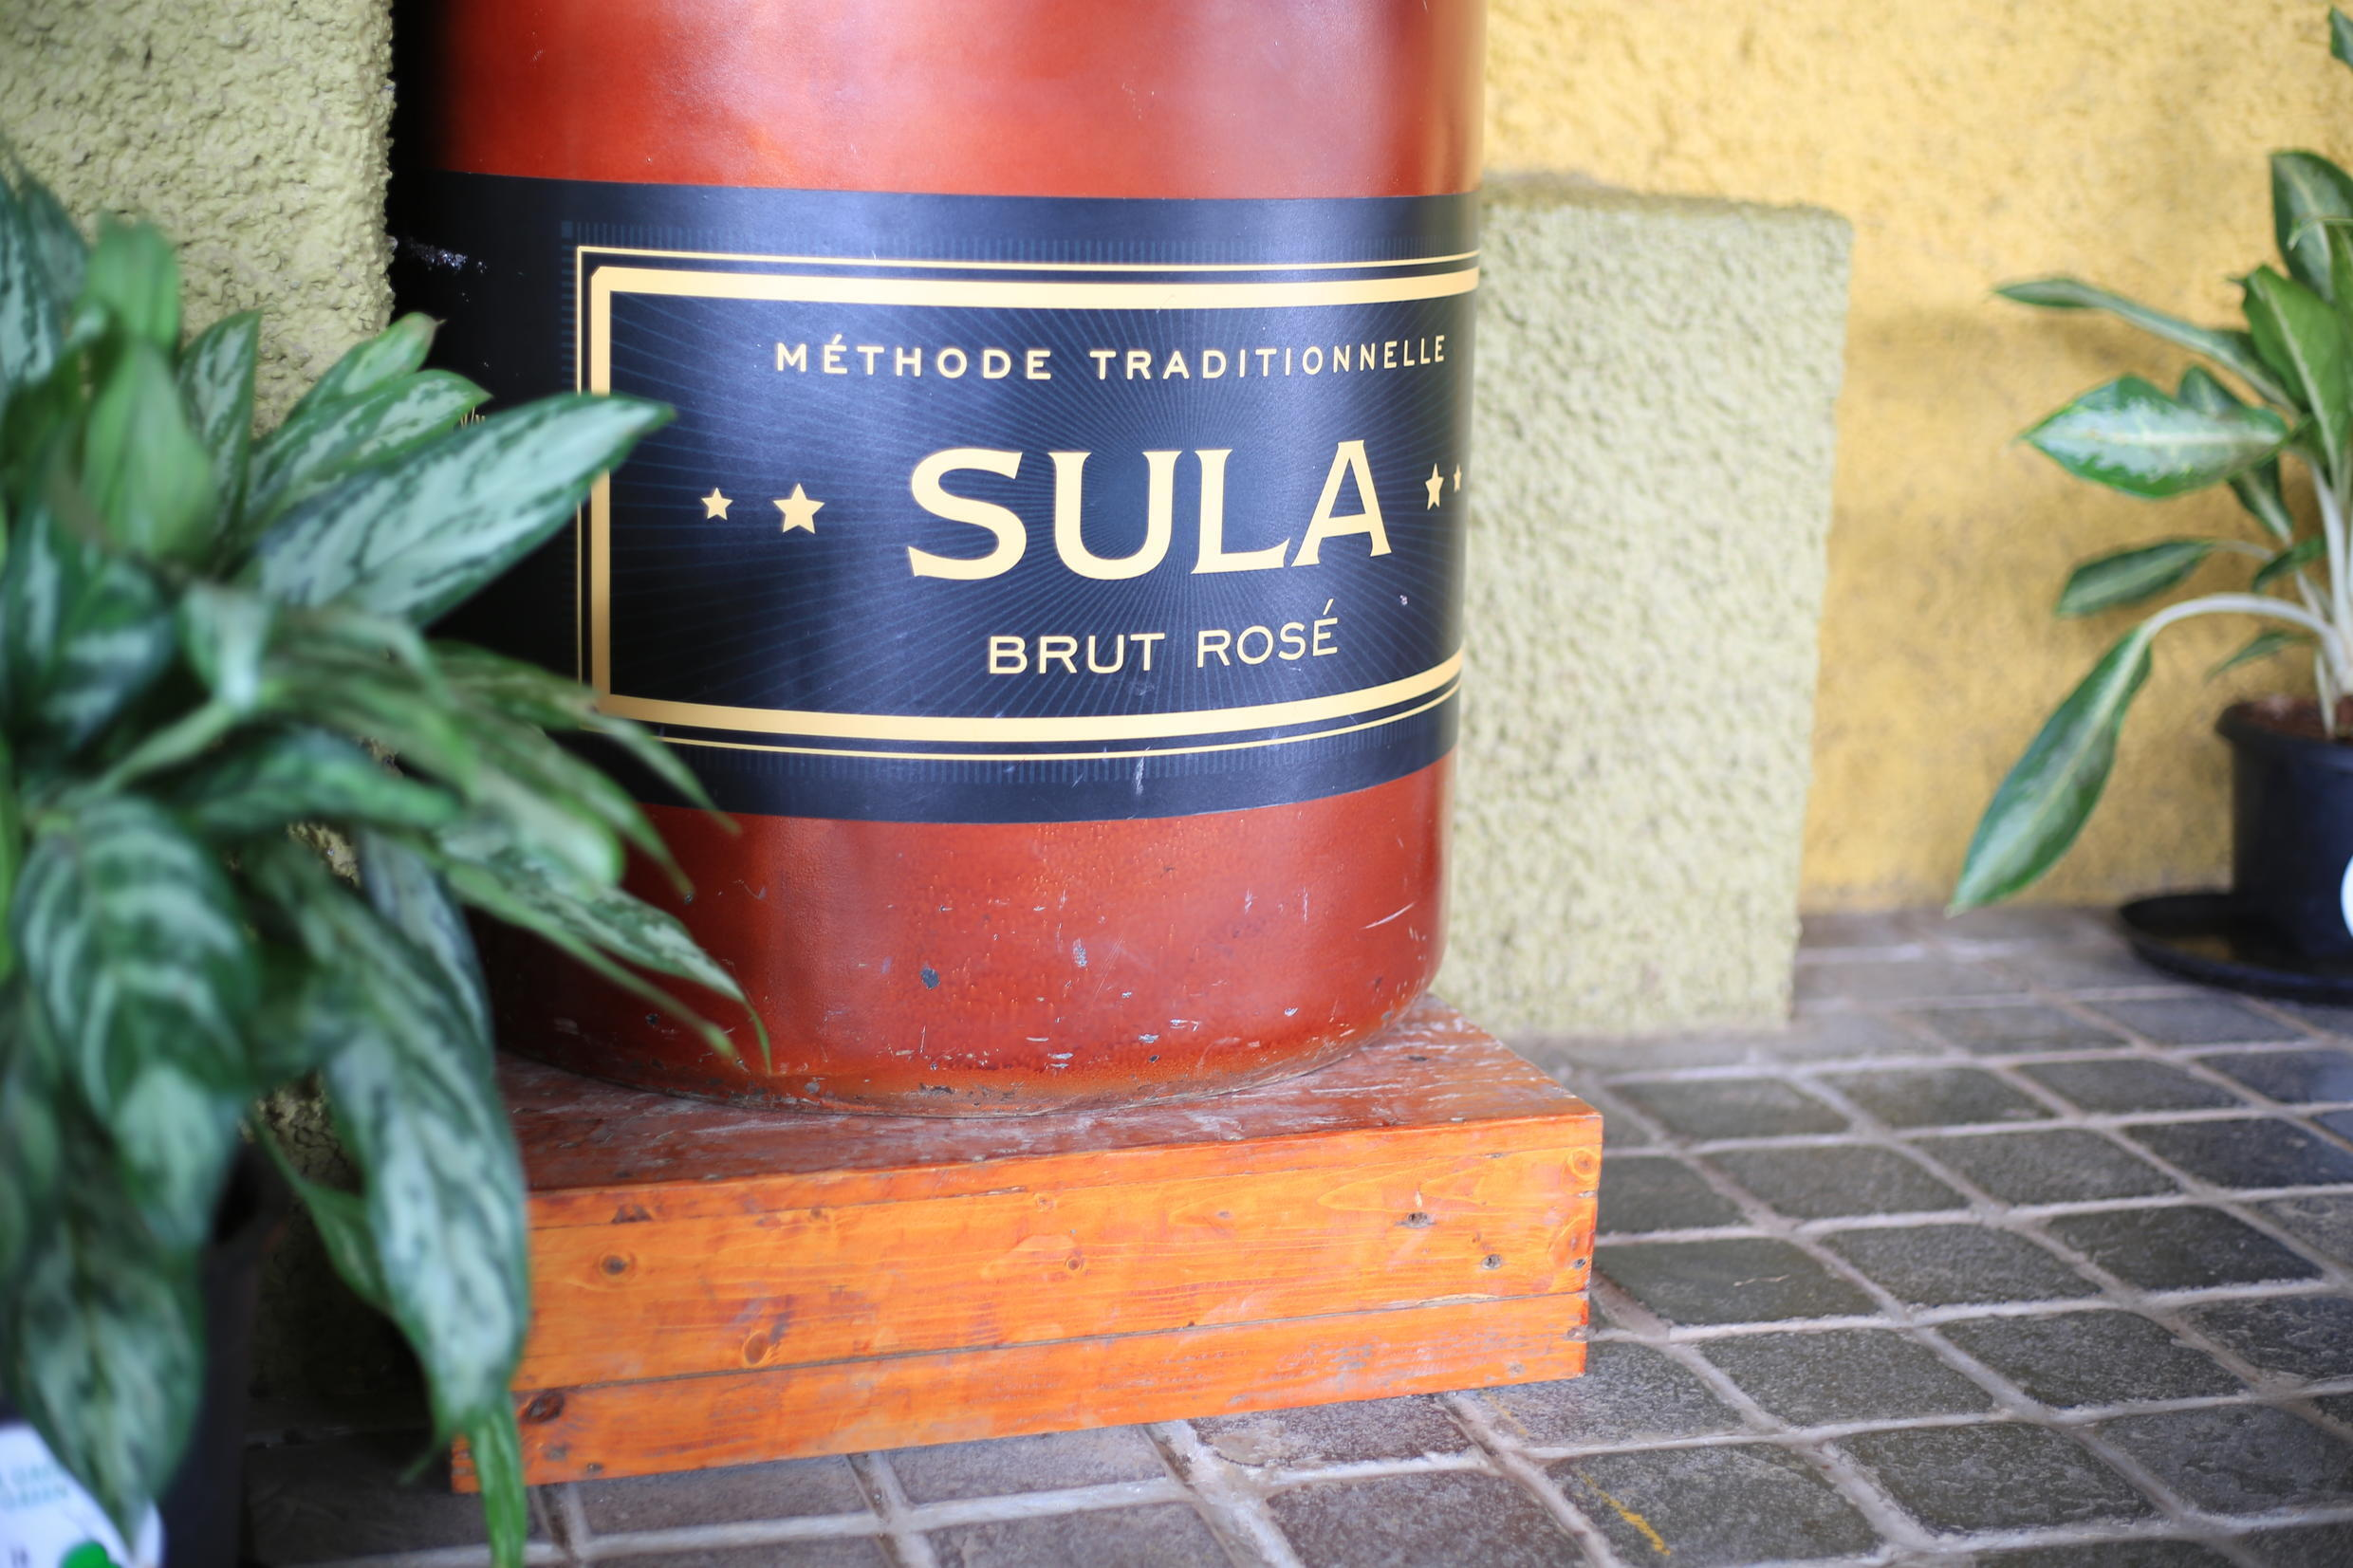 The Sula wine is made in India